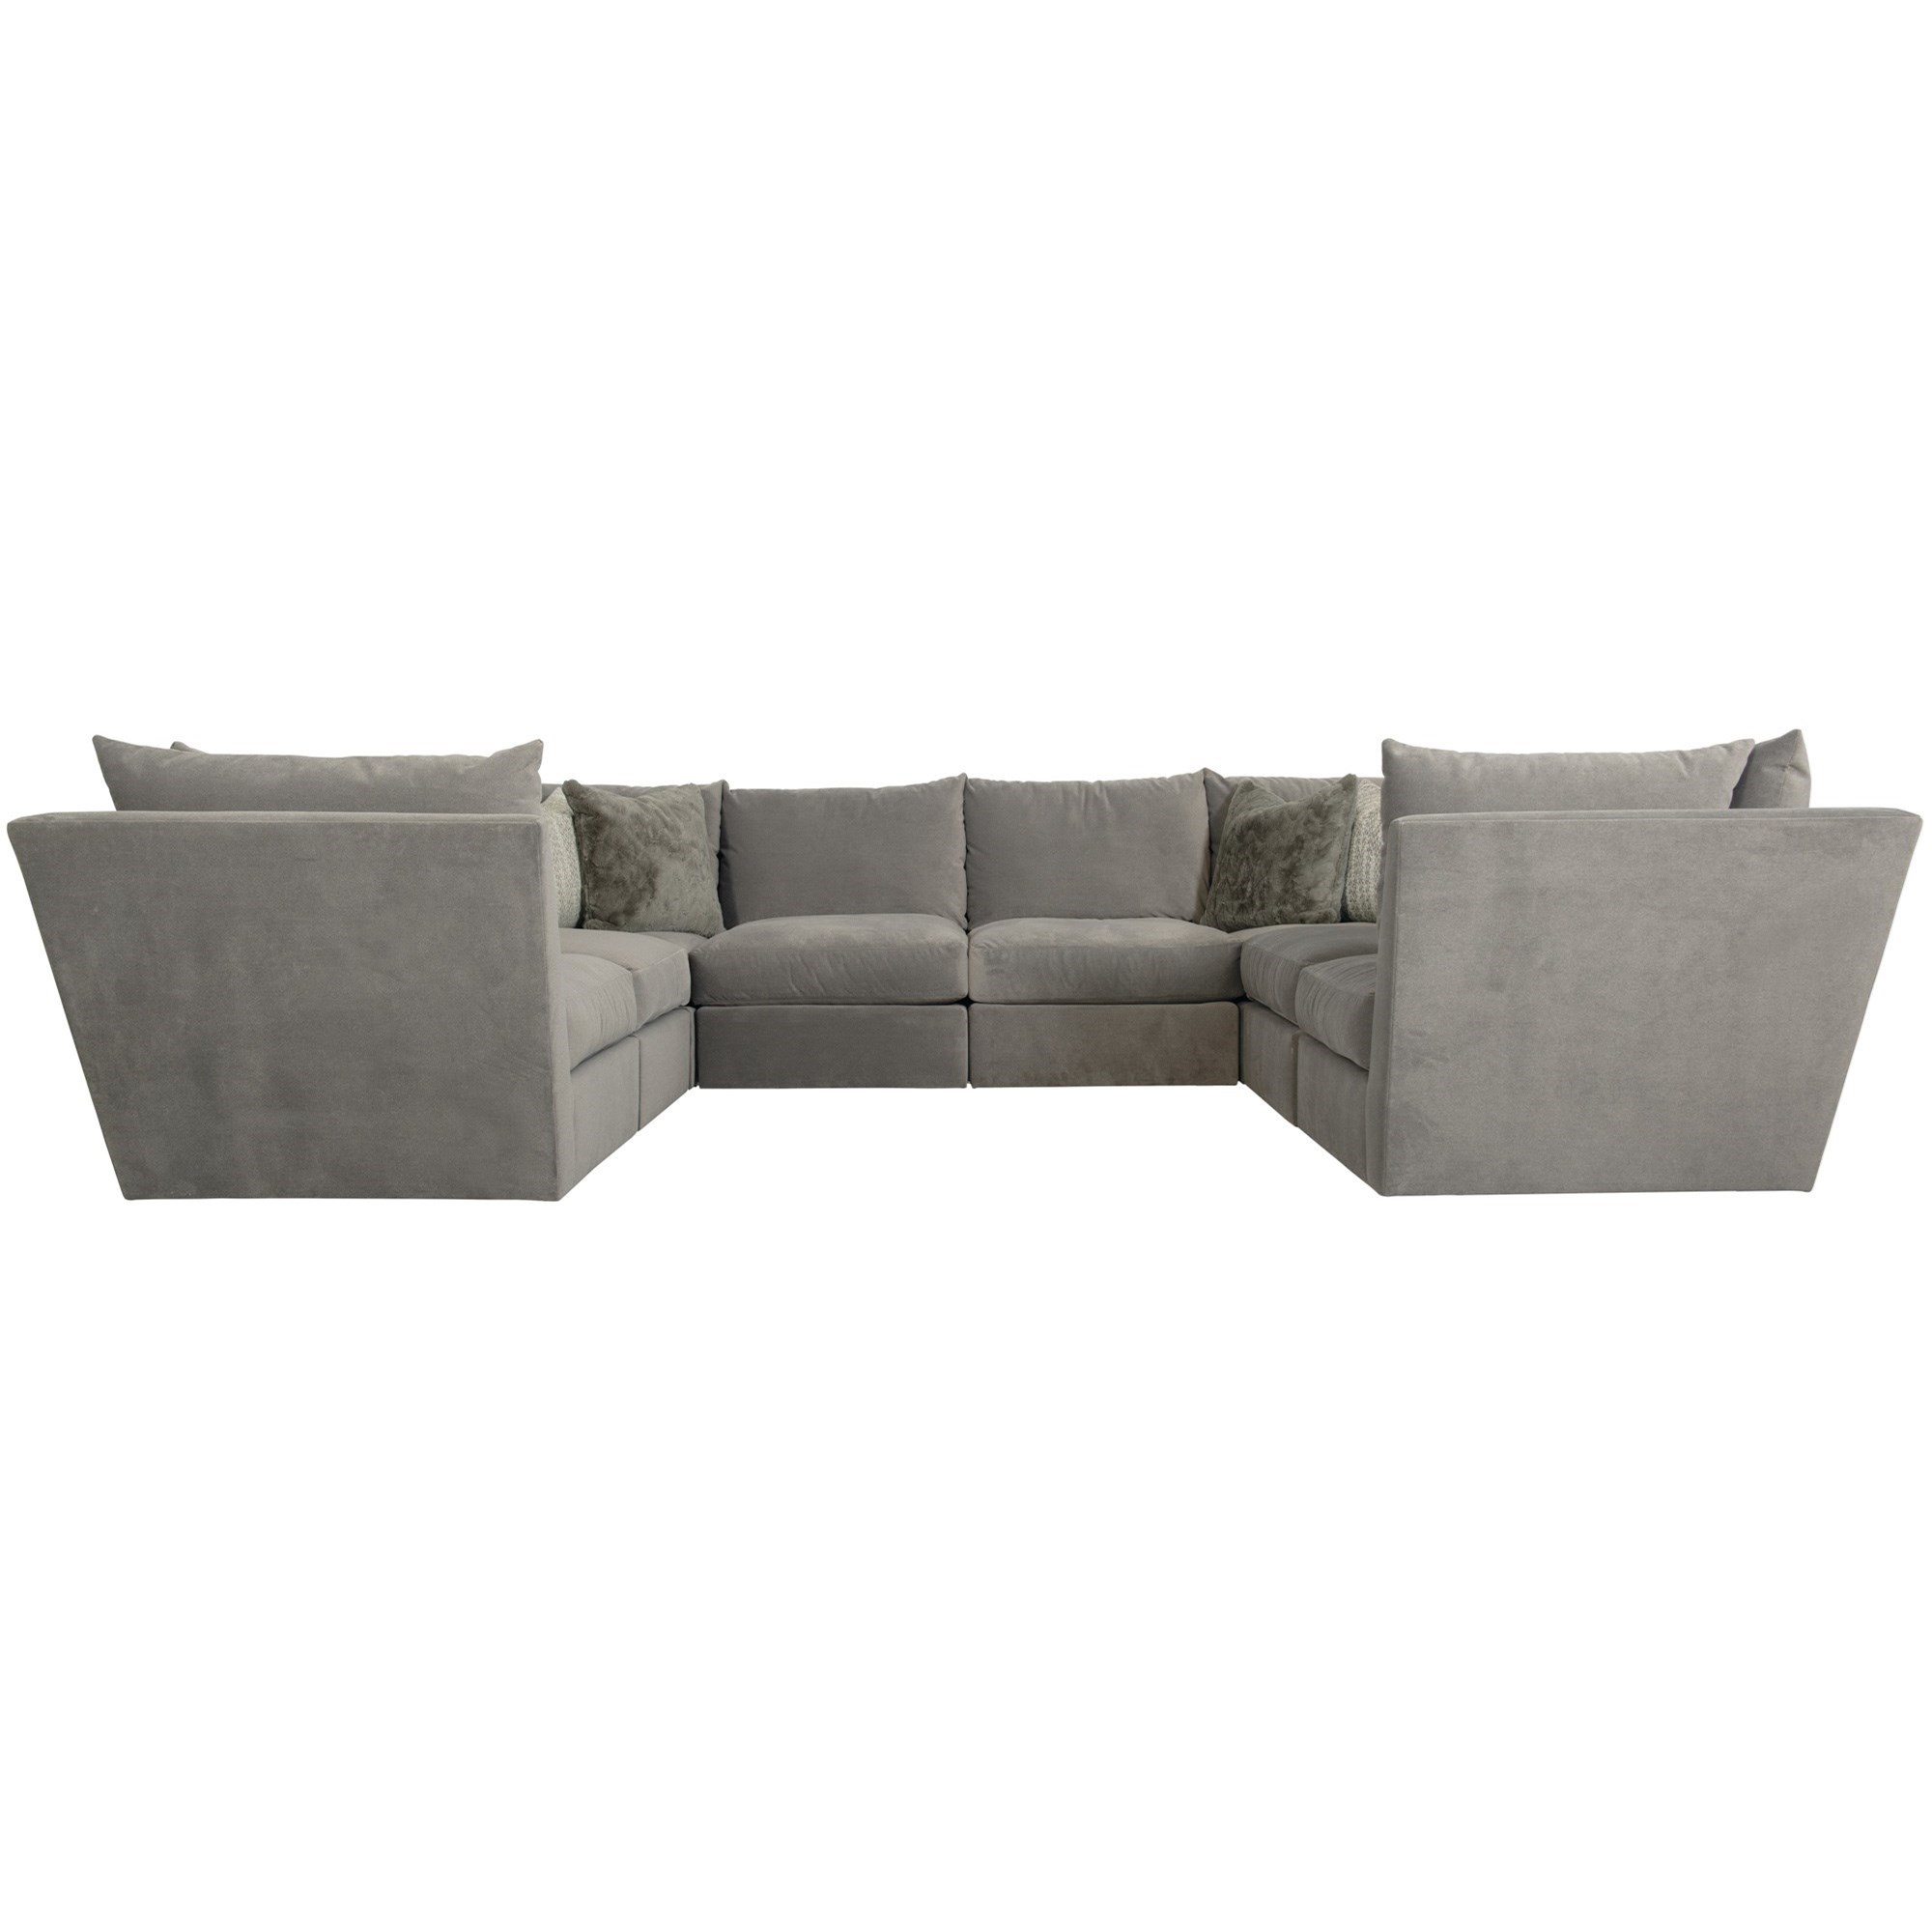 Sanctuary 8-Piece Sectional by Bernhardt at Baer's Furniture